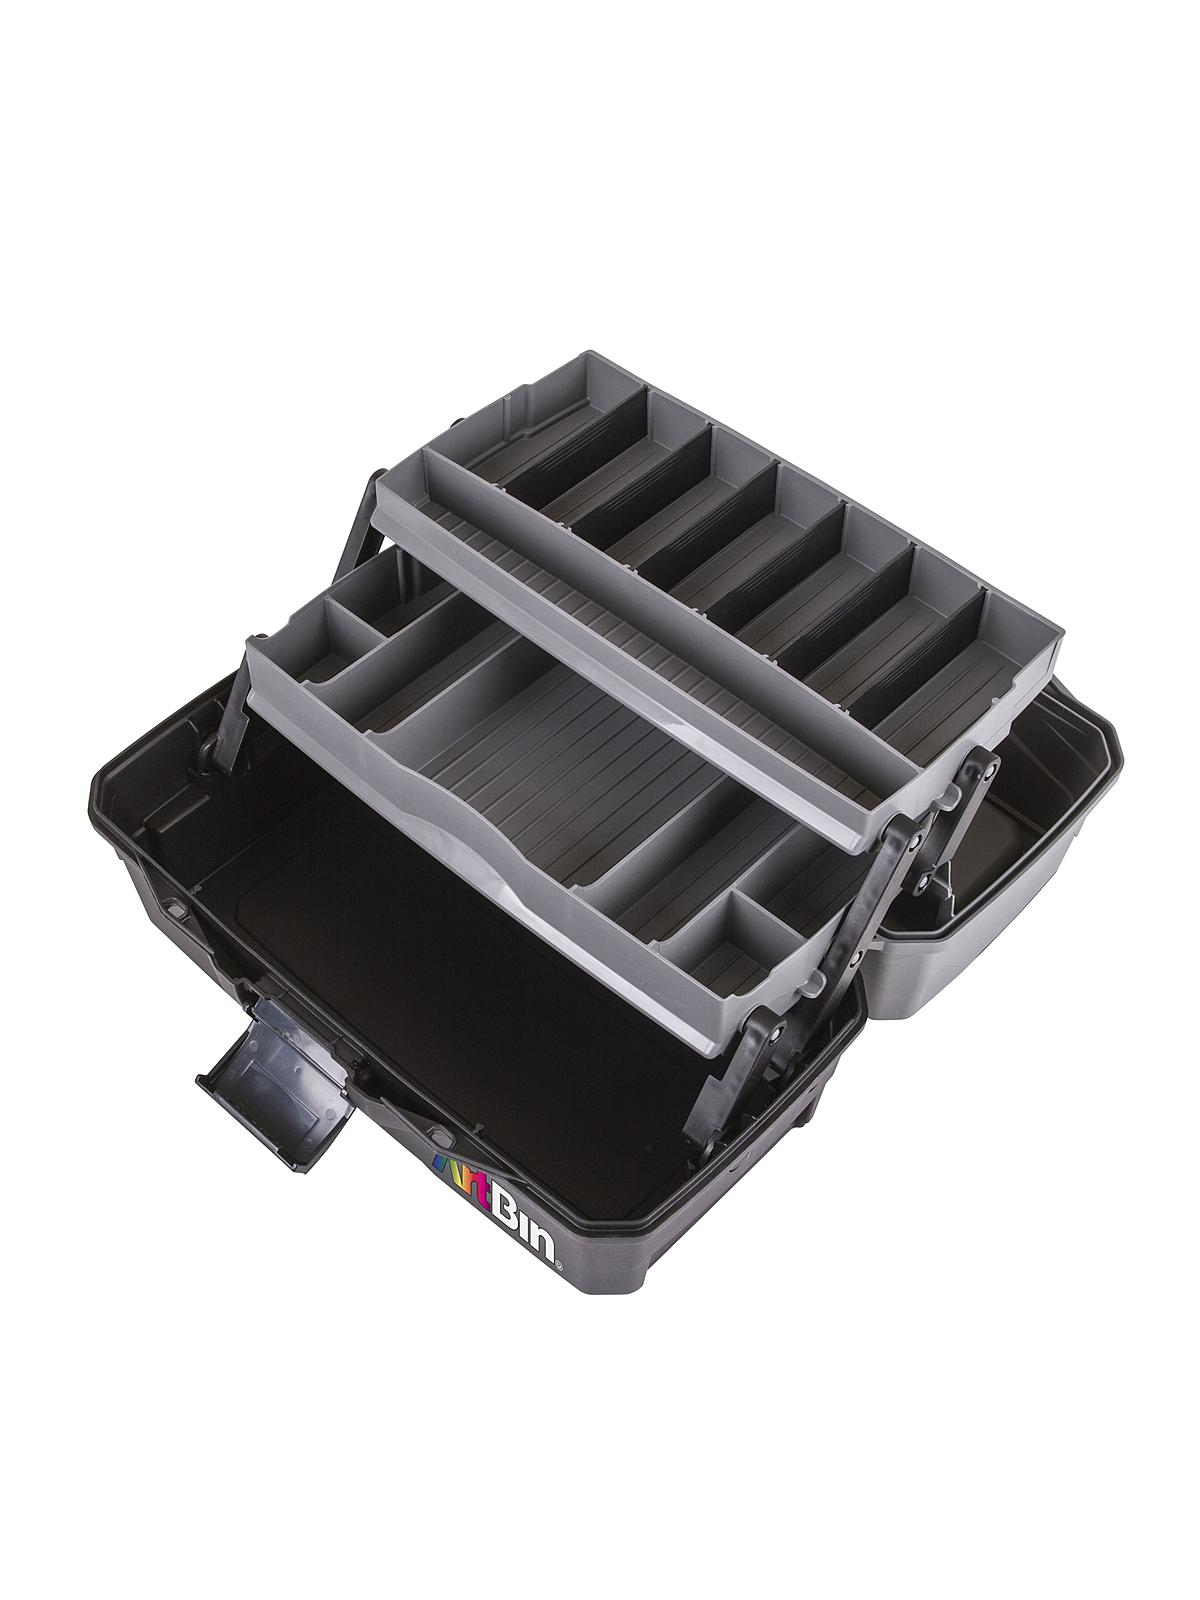 2-Tray Art Supply Box